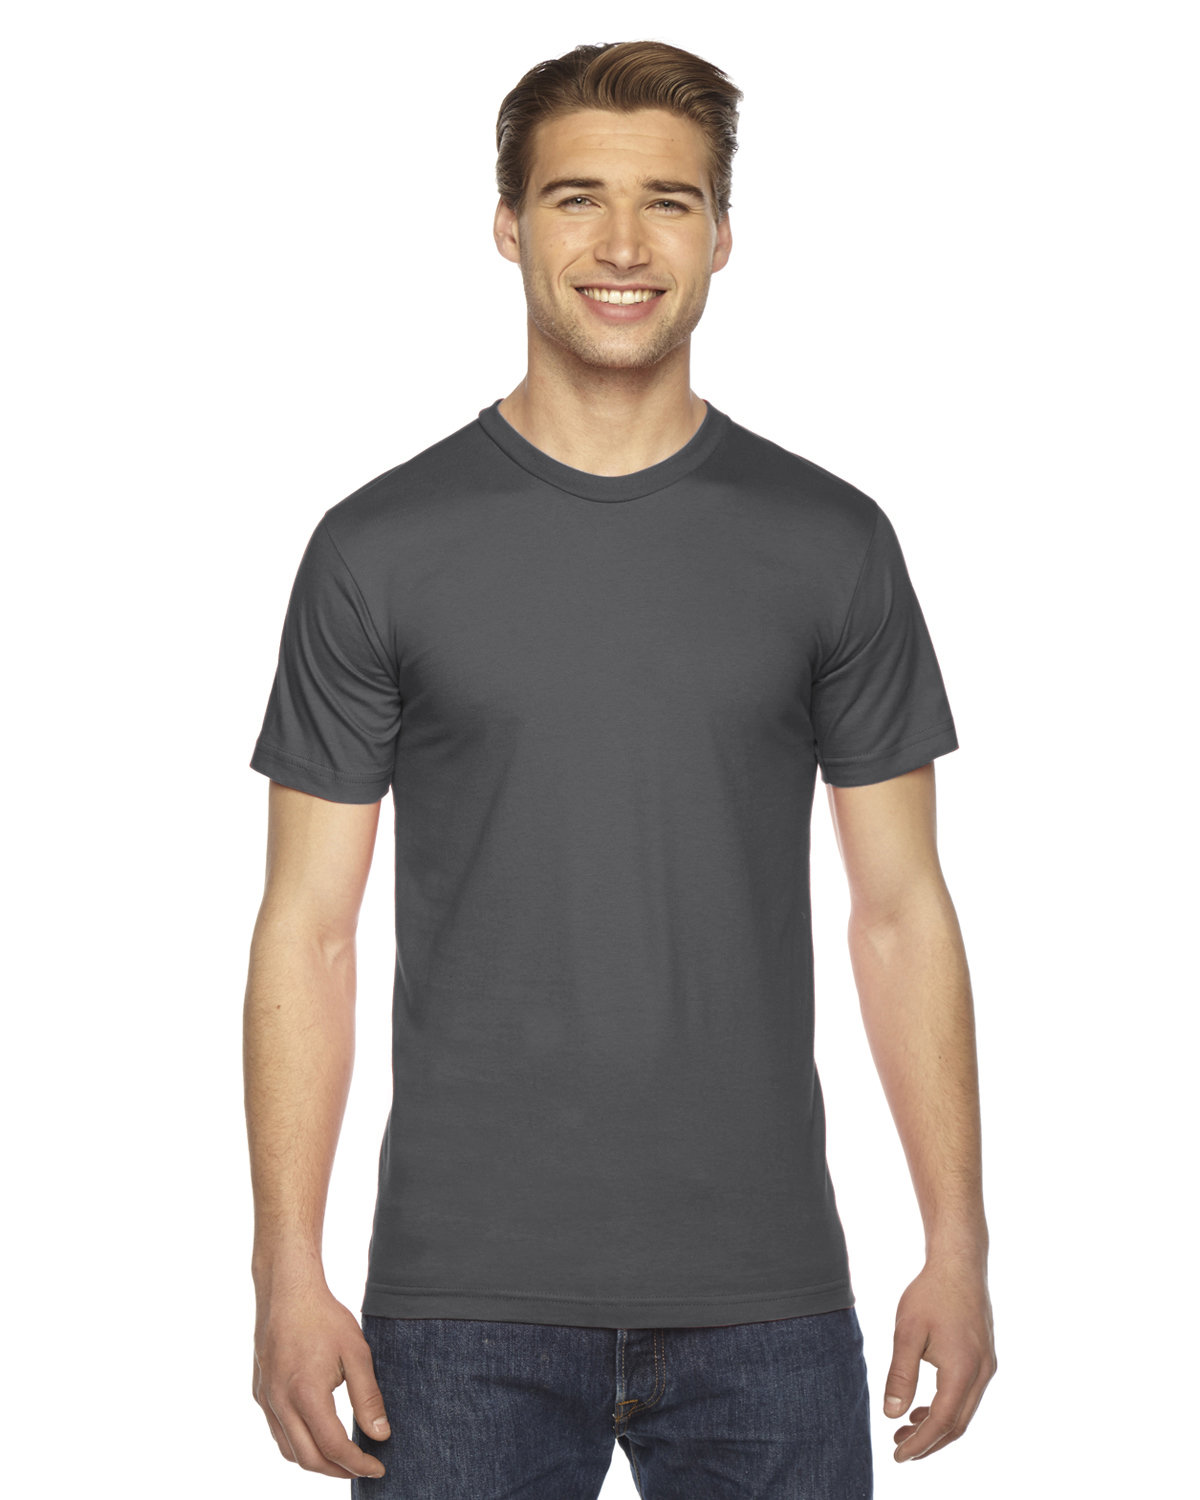 American Apparel Unisex Fine Jersey USA Made T-Shirt ASPHALT